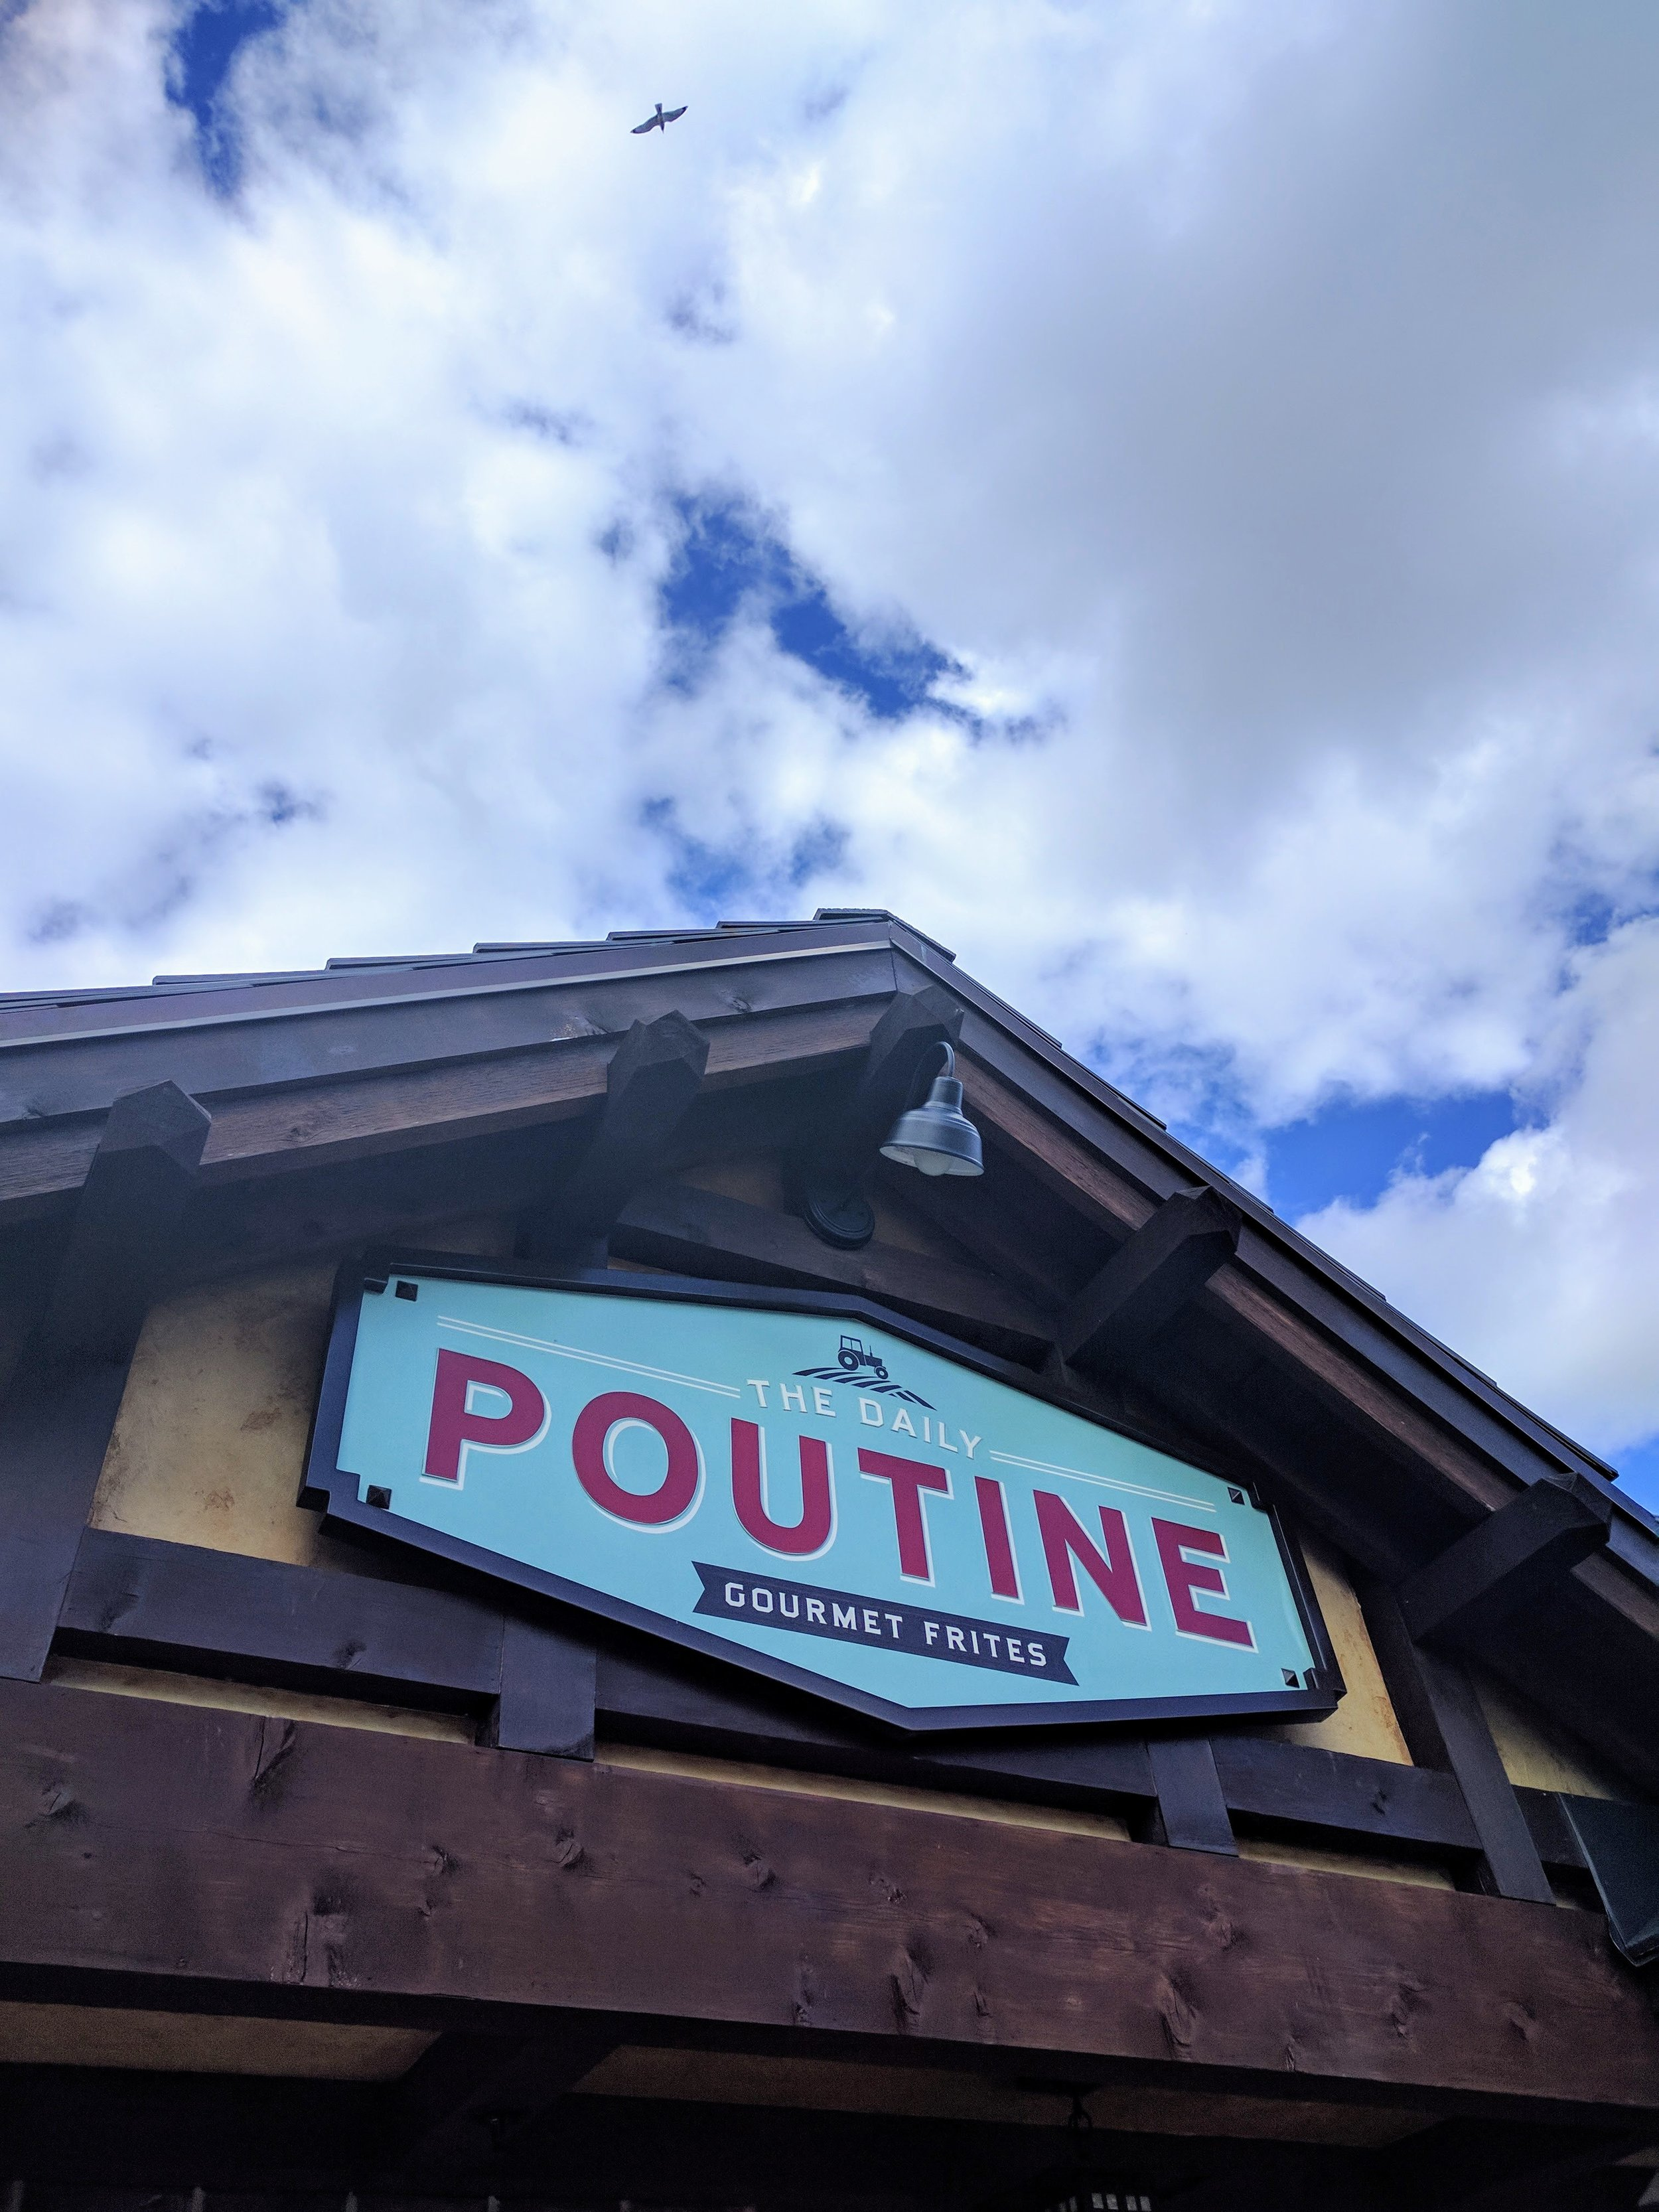 The Daily Poutine is located behind the Lego Store next to World of Disney.